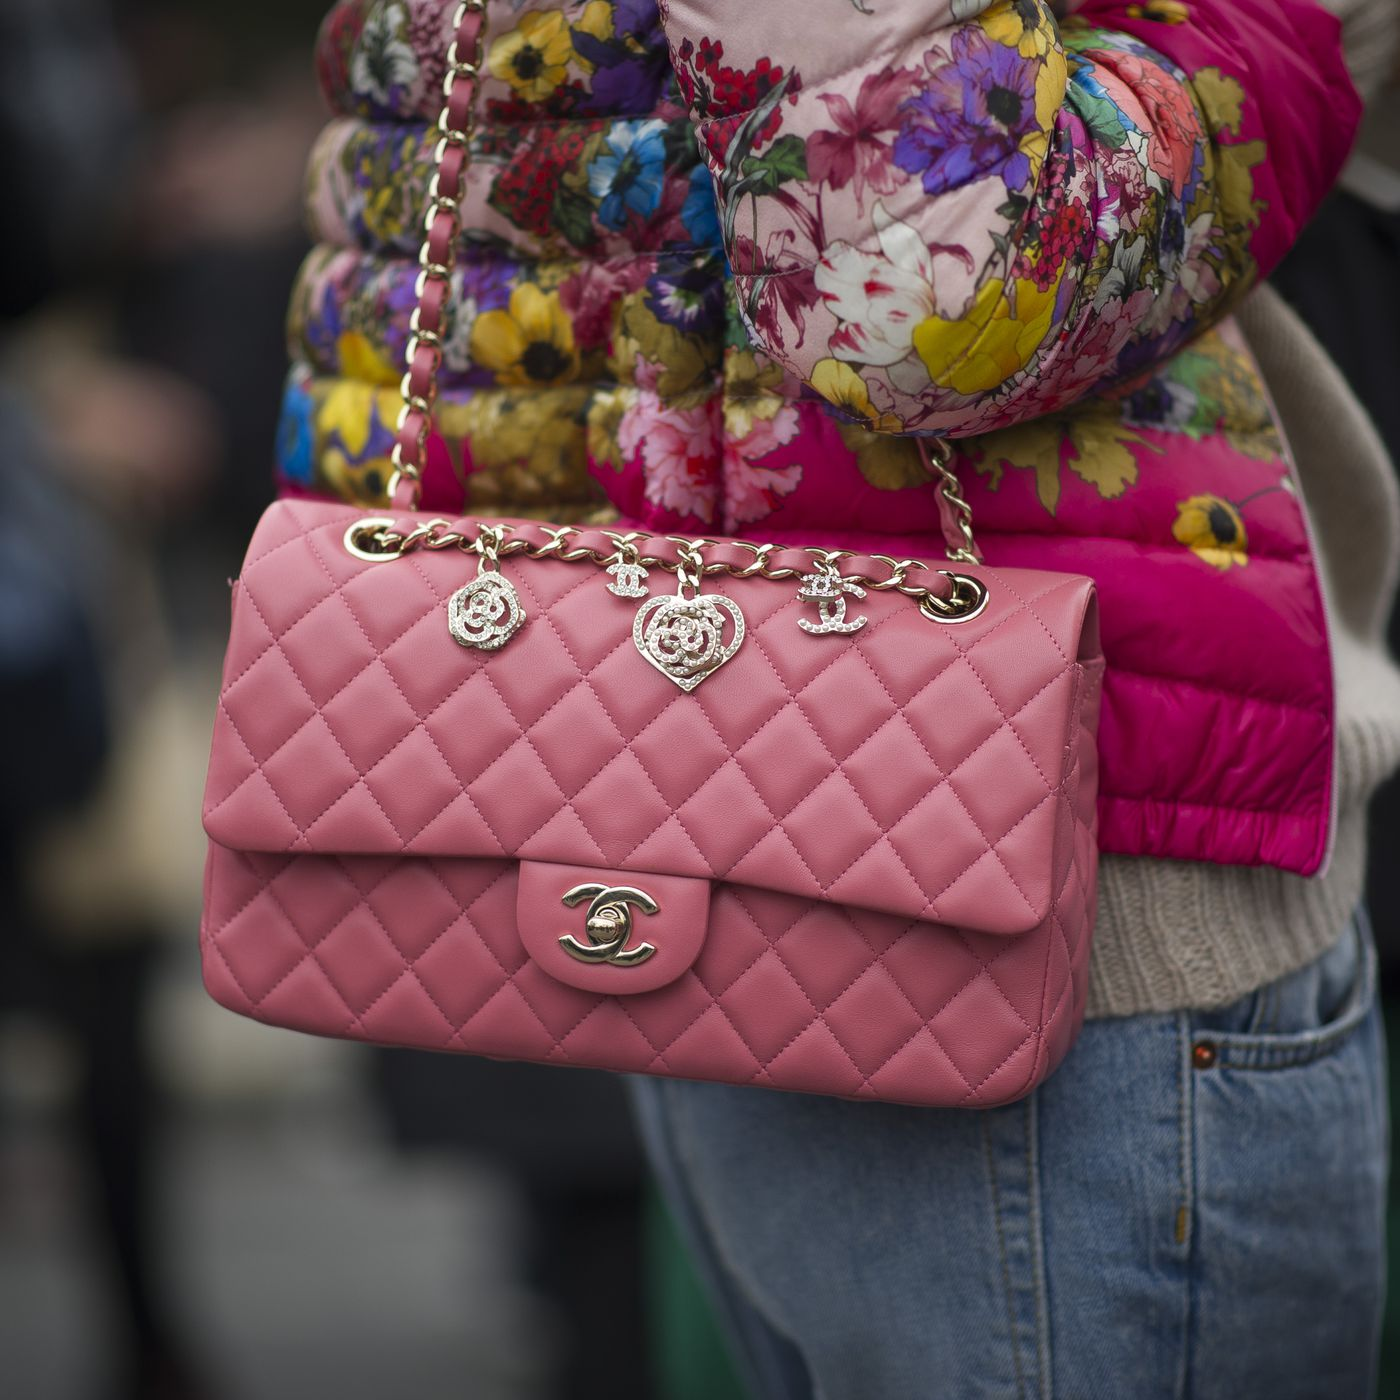 37460871cb923c See How Much Chanel Bag Prices Have Skyrocketed This Decade - Racked